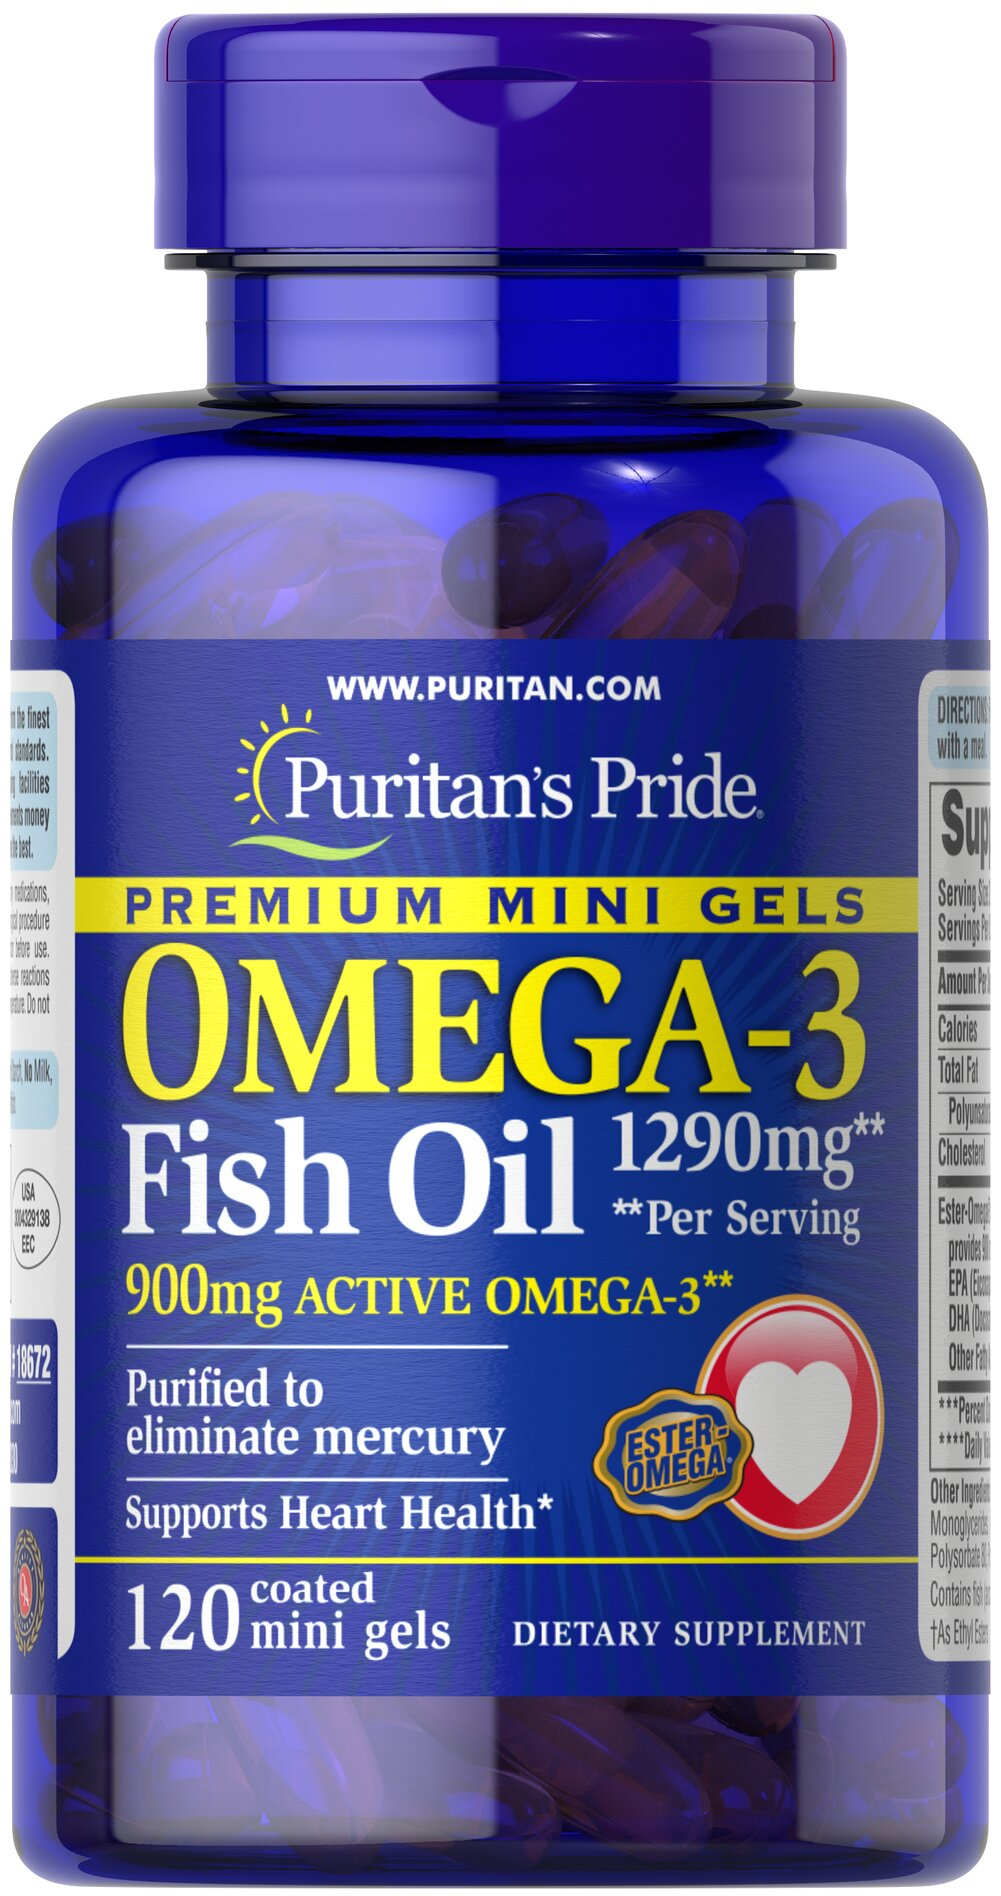 Omega 3 fish oil 645 mg mini gels 450 mg active omega 3 for Omega 3 fish oil pills